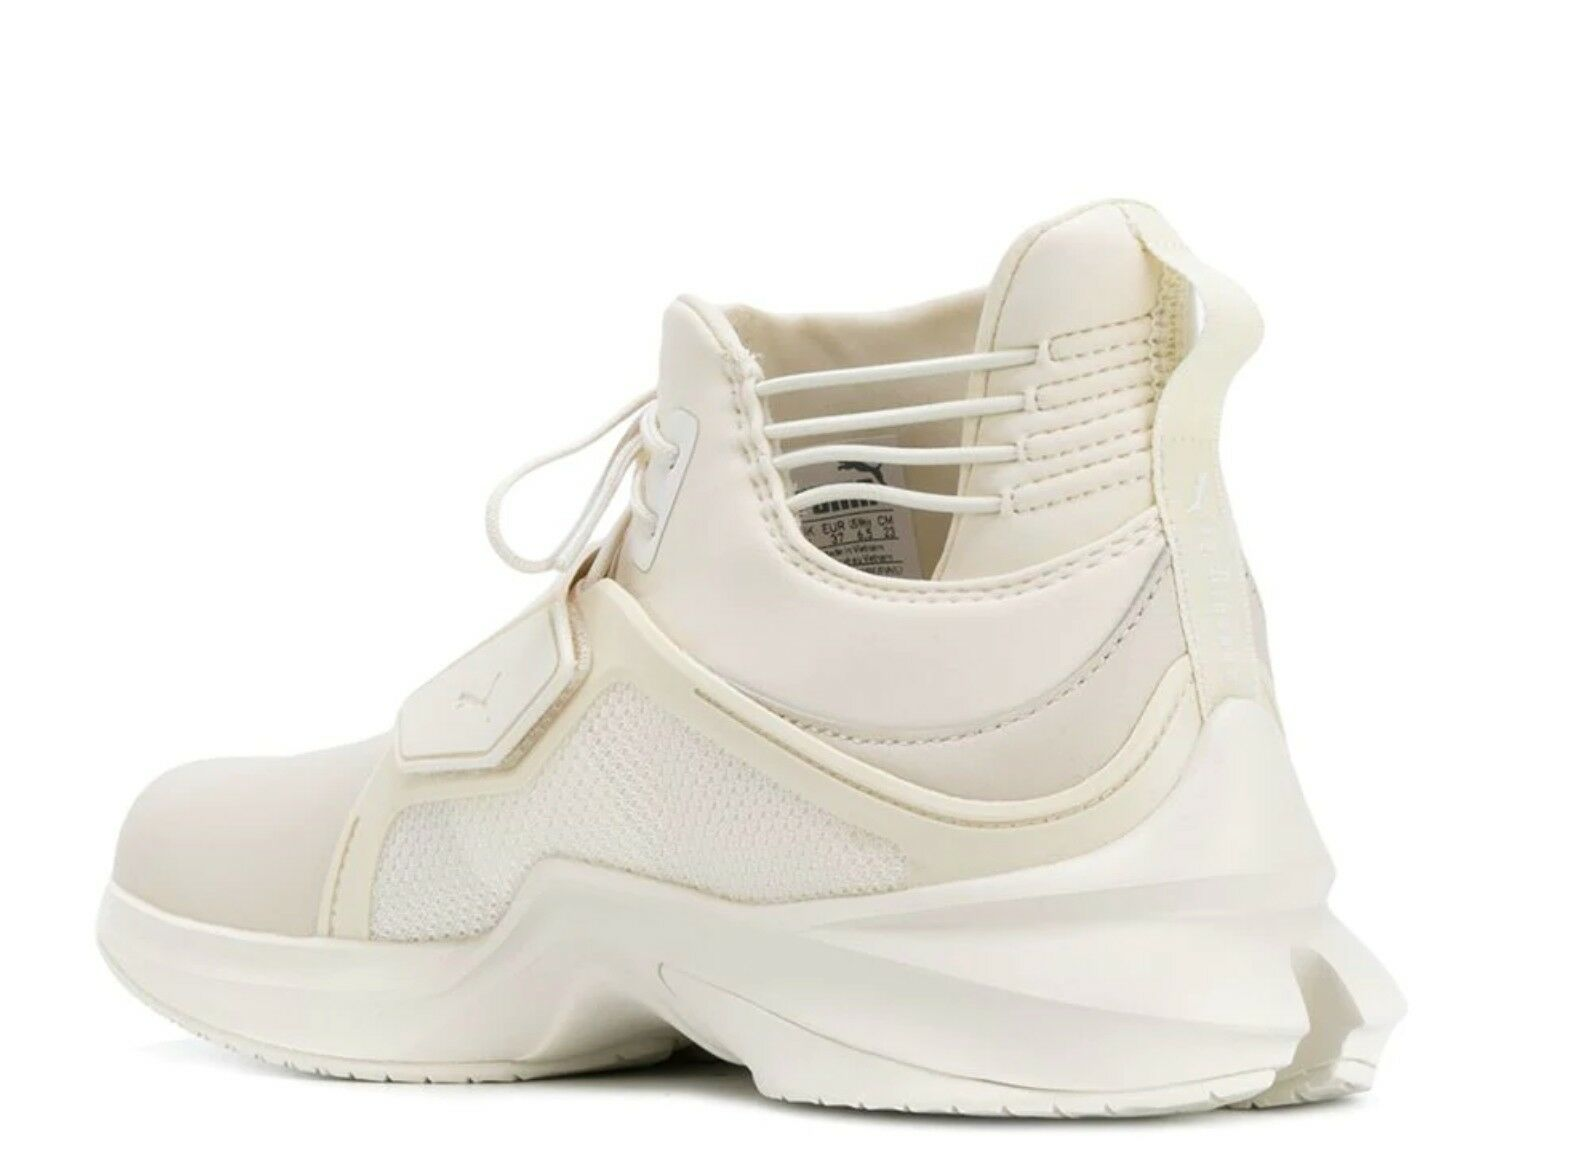 FENTY X PUMA Rihanna Hi-Top Hi-Top Hi-Top Trainer Off White Leather Sneakers US 9 NEW 197398 edadae